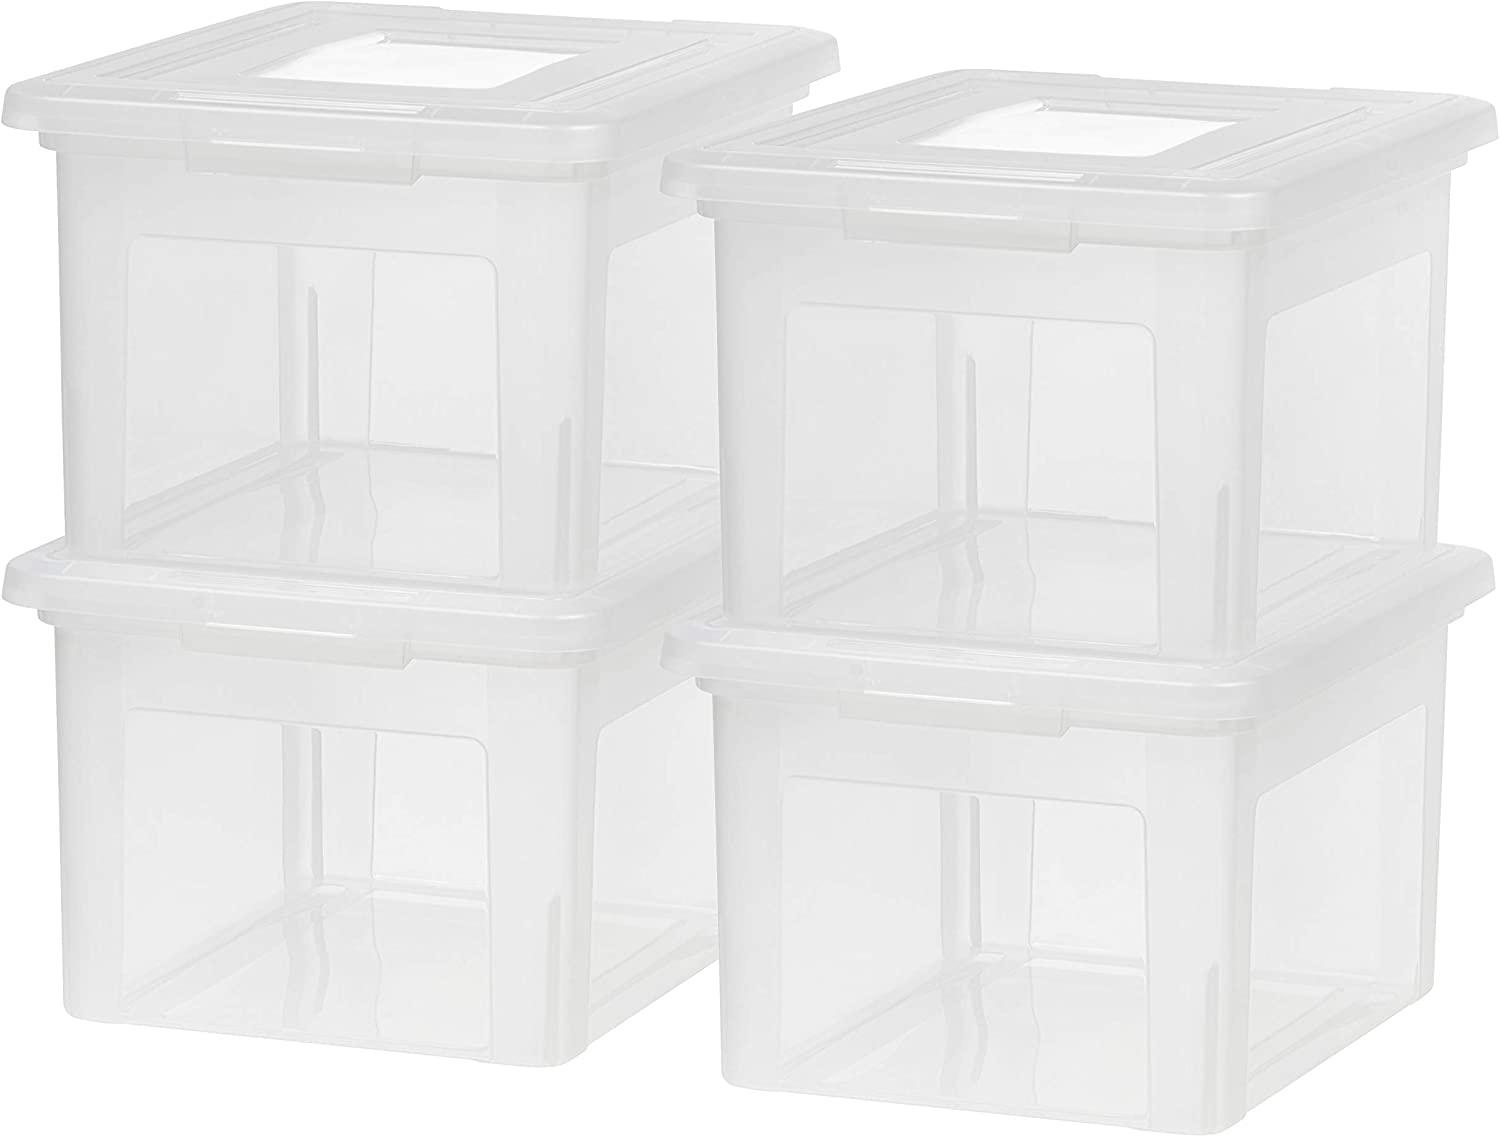 IRIS USA FB-21EE Letter and Legal Size File Box, Letter & Legal, Clear, 4 Pack: Home & Kitchen